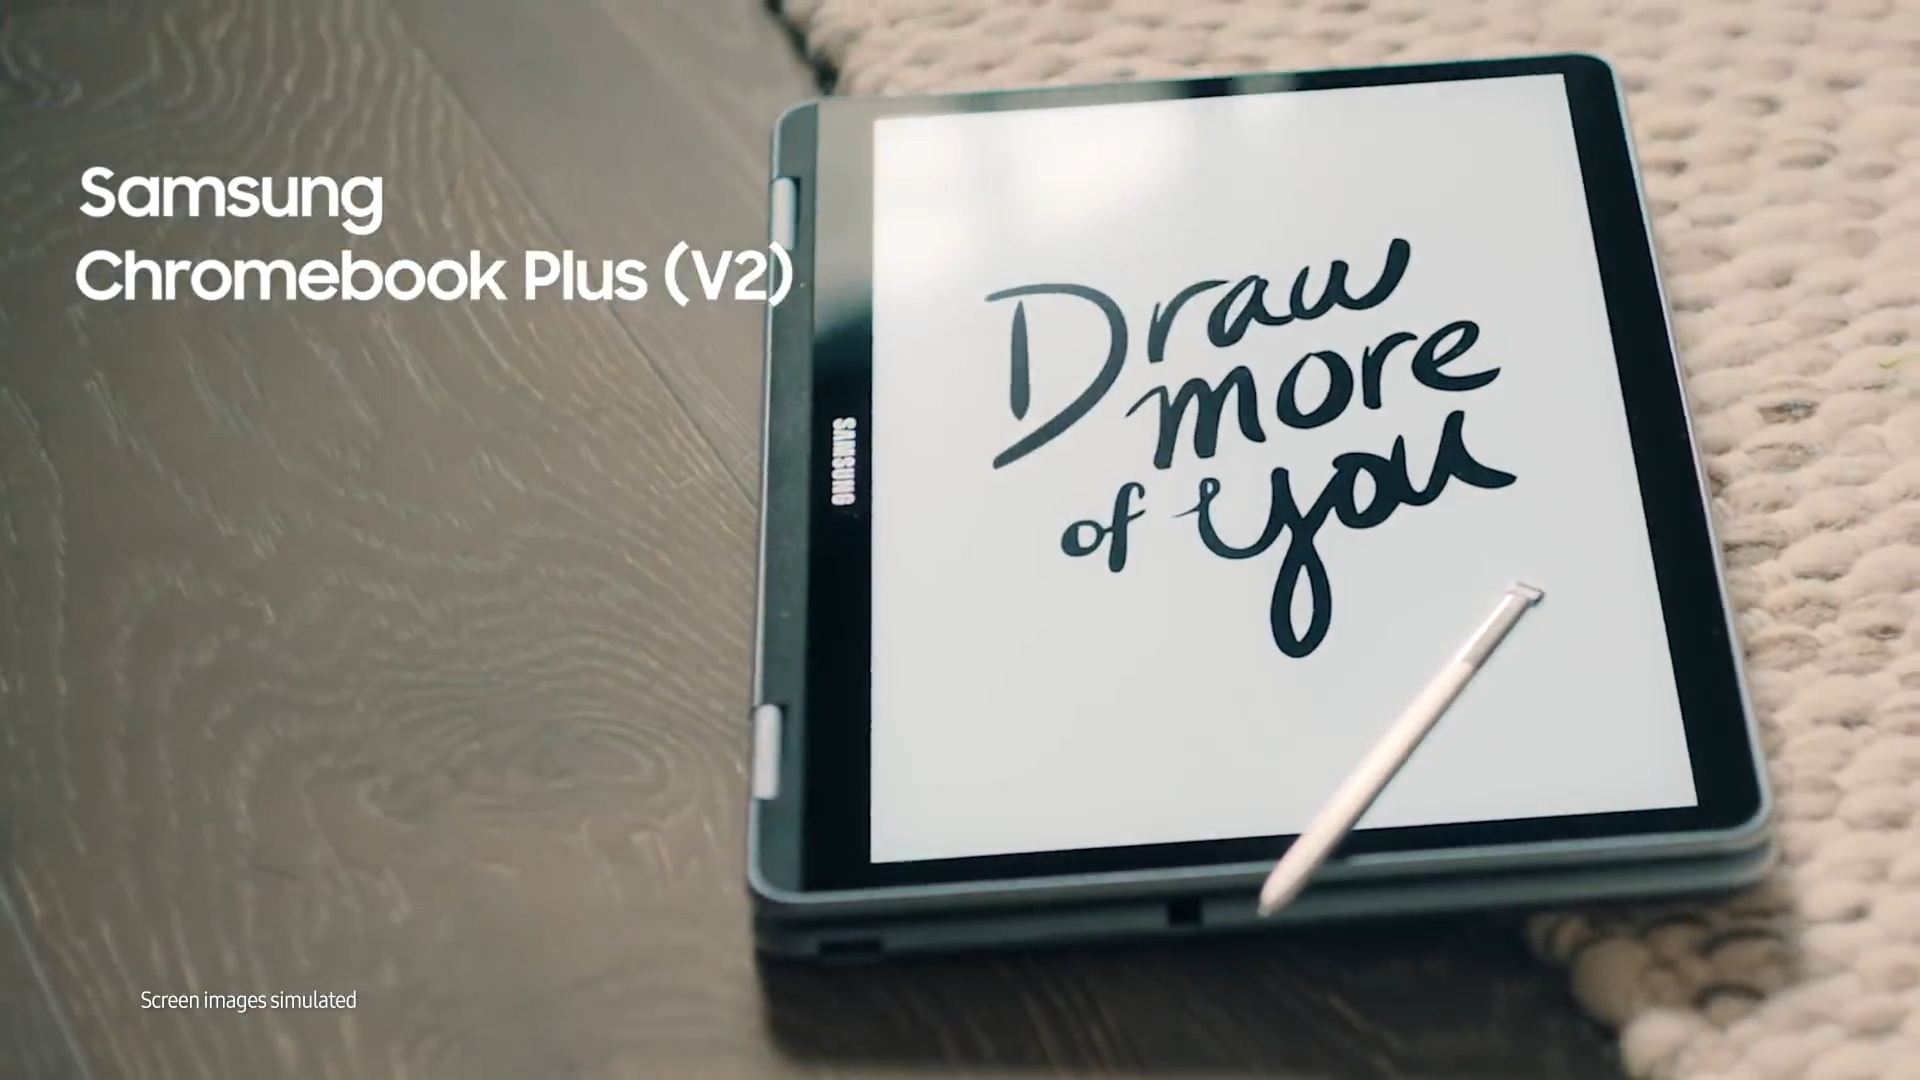 Chromebook Plus (V2): Draw More of You